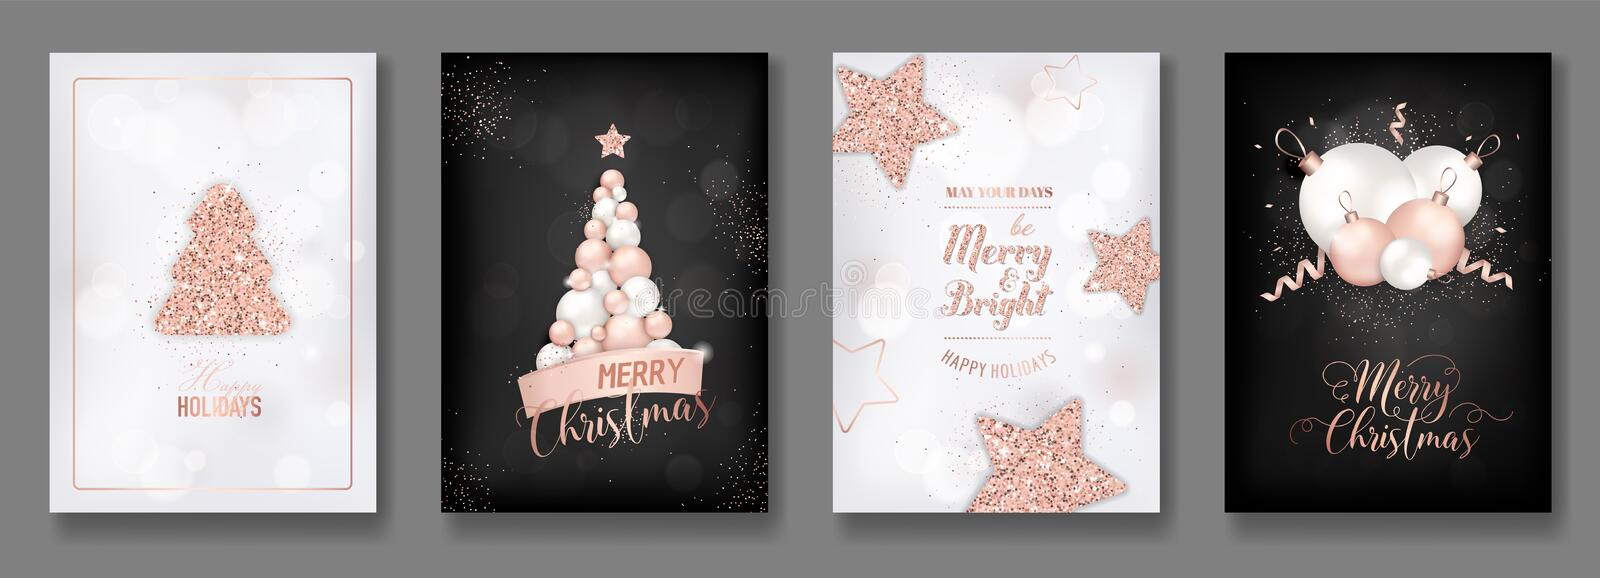 Vector collection of elegant merry christmas cards with shining rose gold glitter christmas balls star christmas tree royalty free illustration